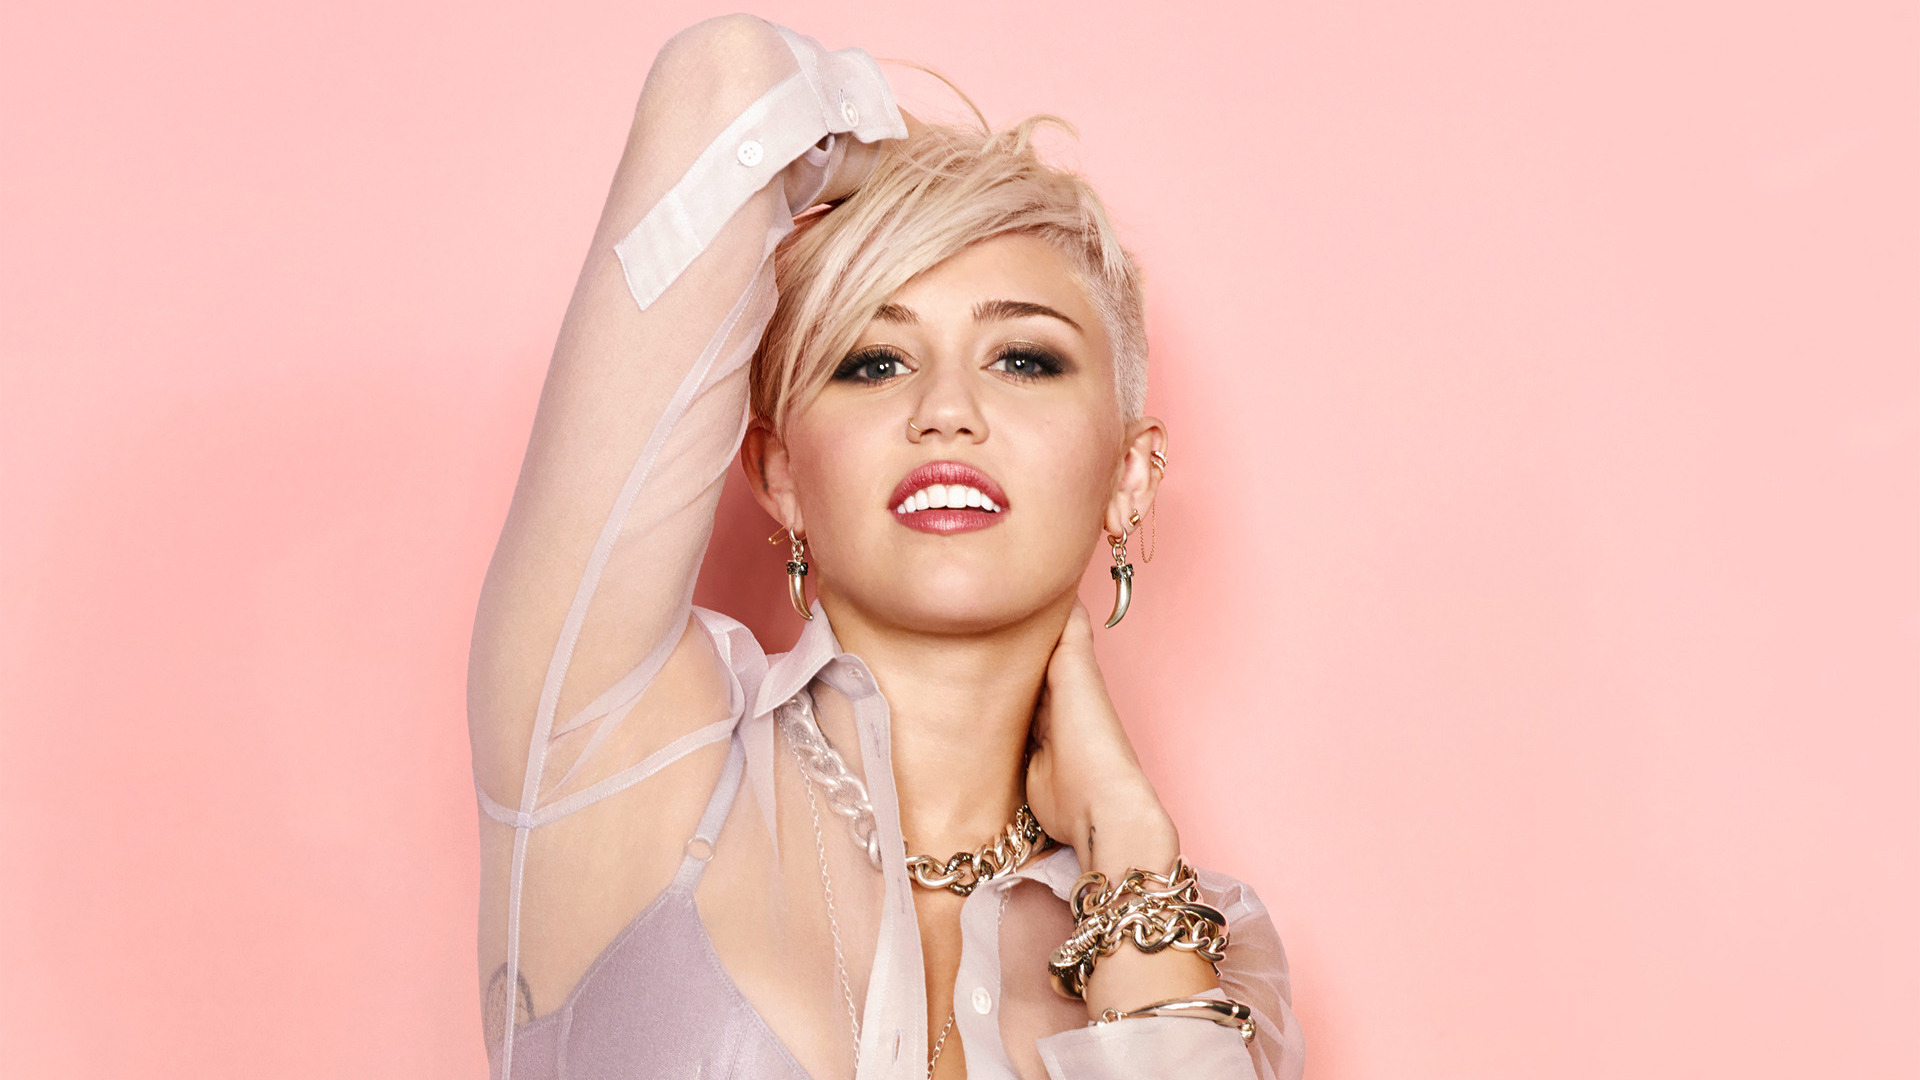 miley cyrus wallpaper 65733